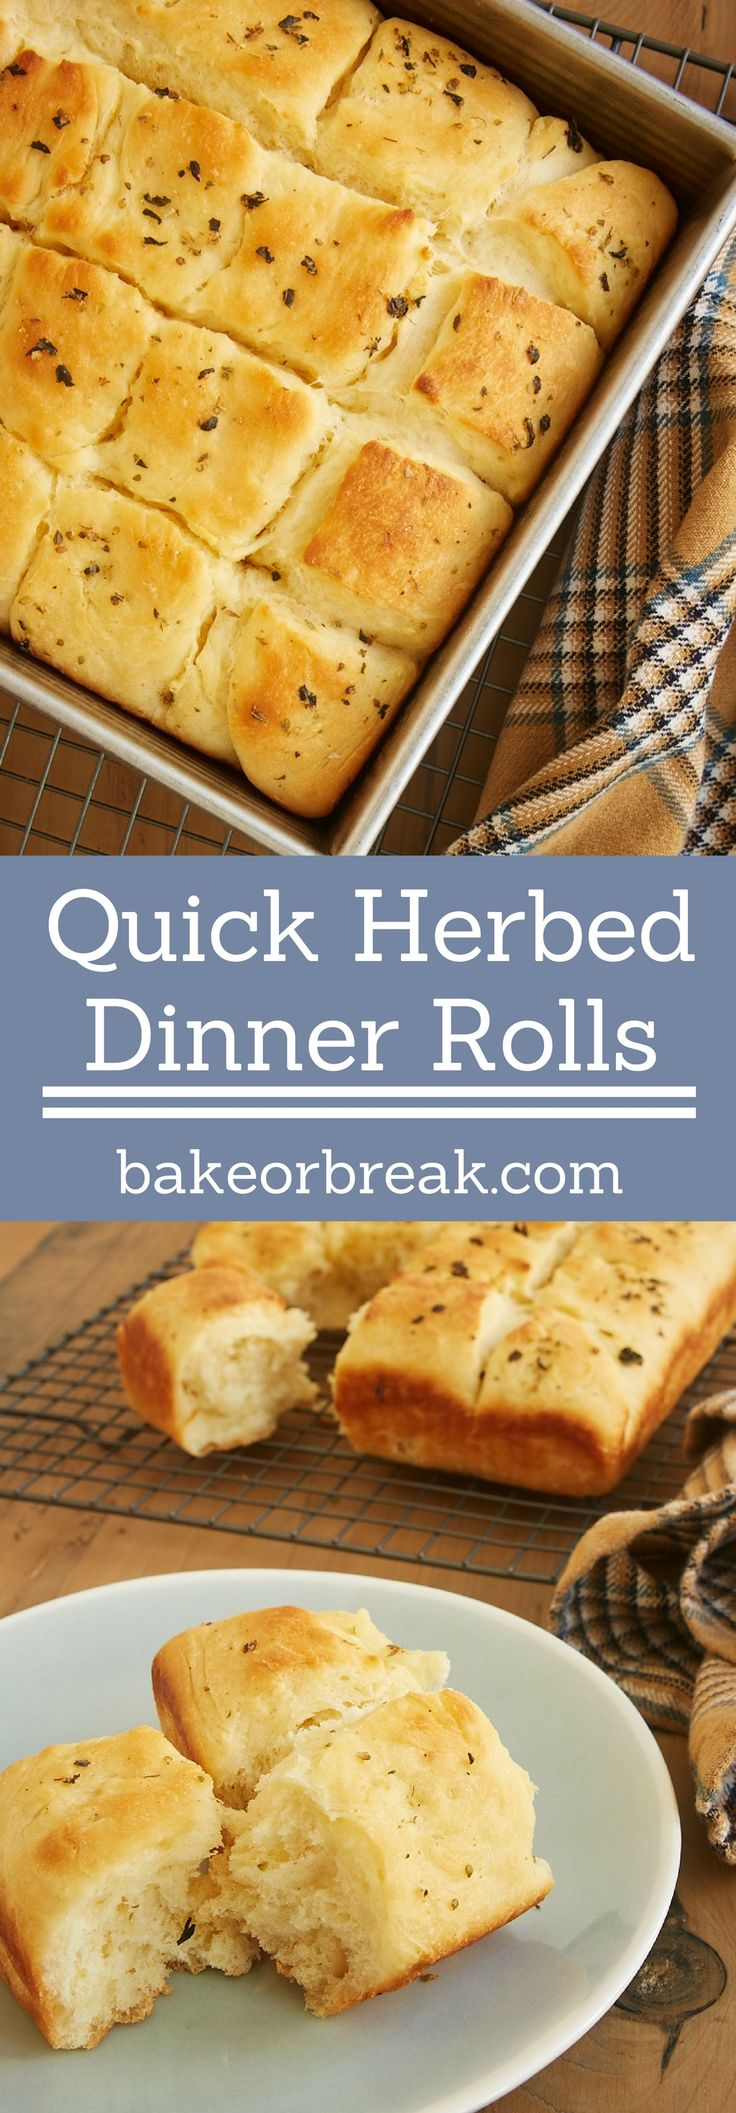 how to make dinner rolls with quick rise yeast